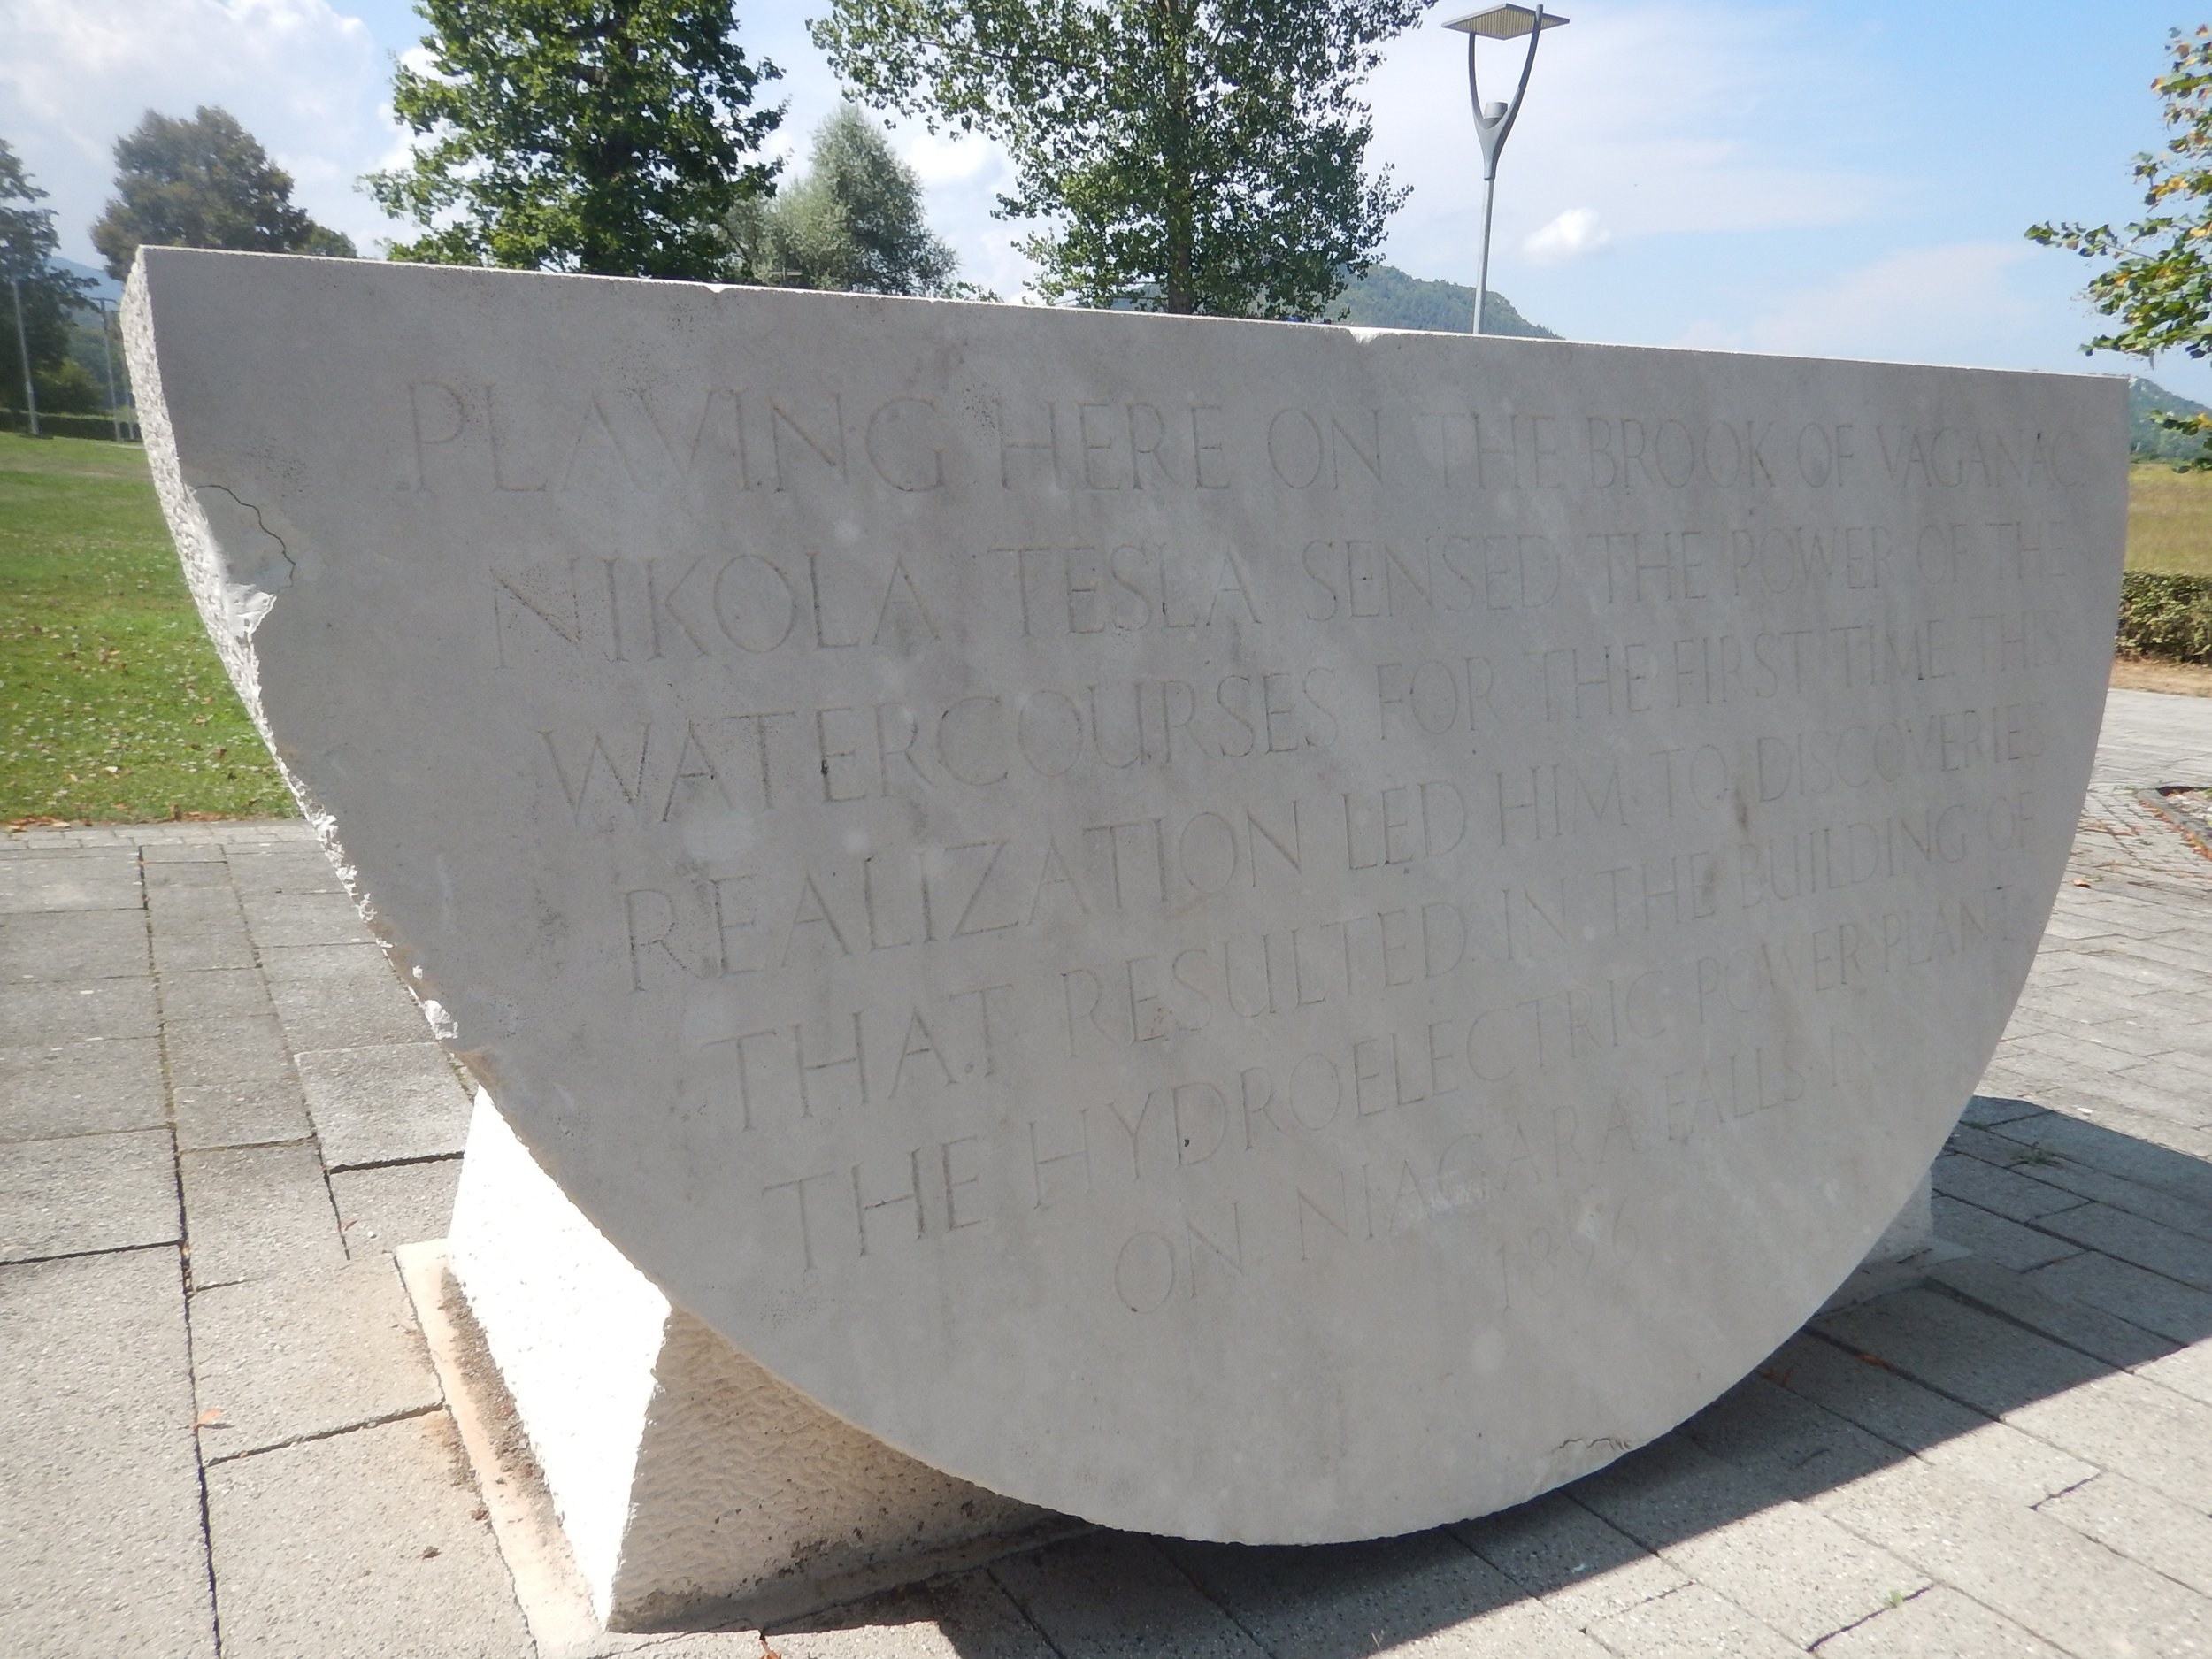 in a memorial park in Smiljan, Croatia